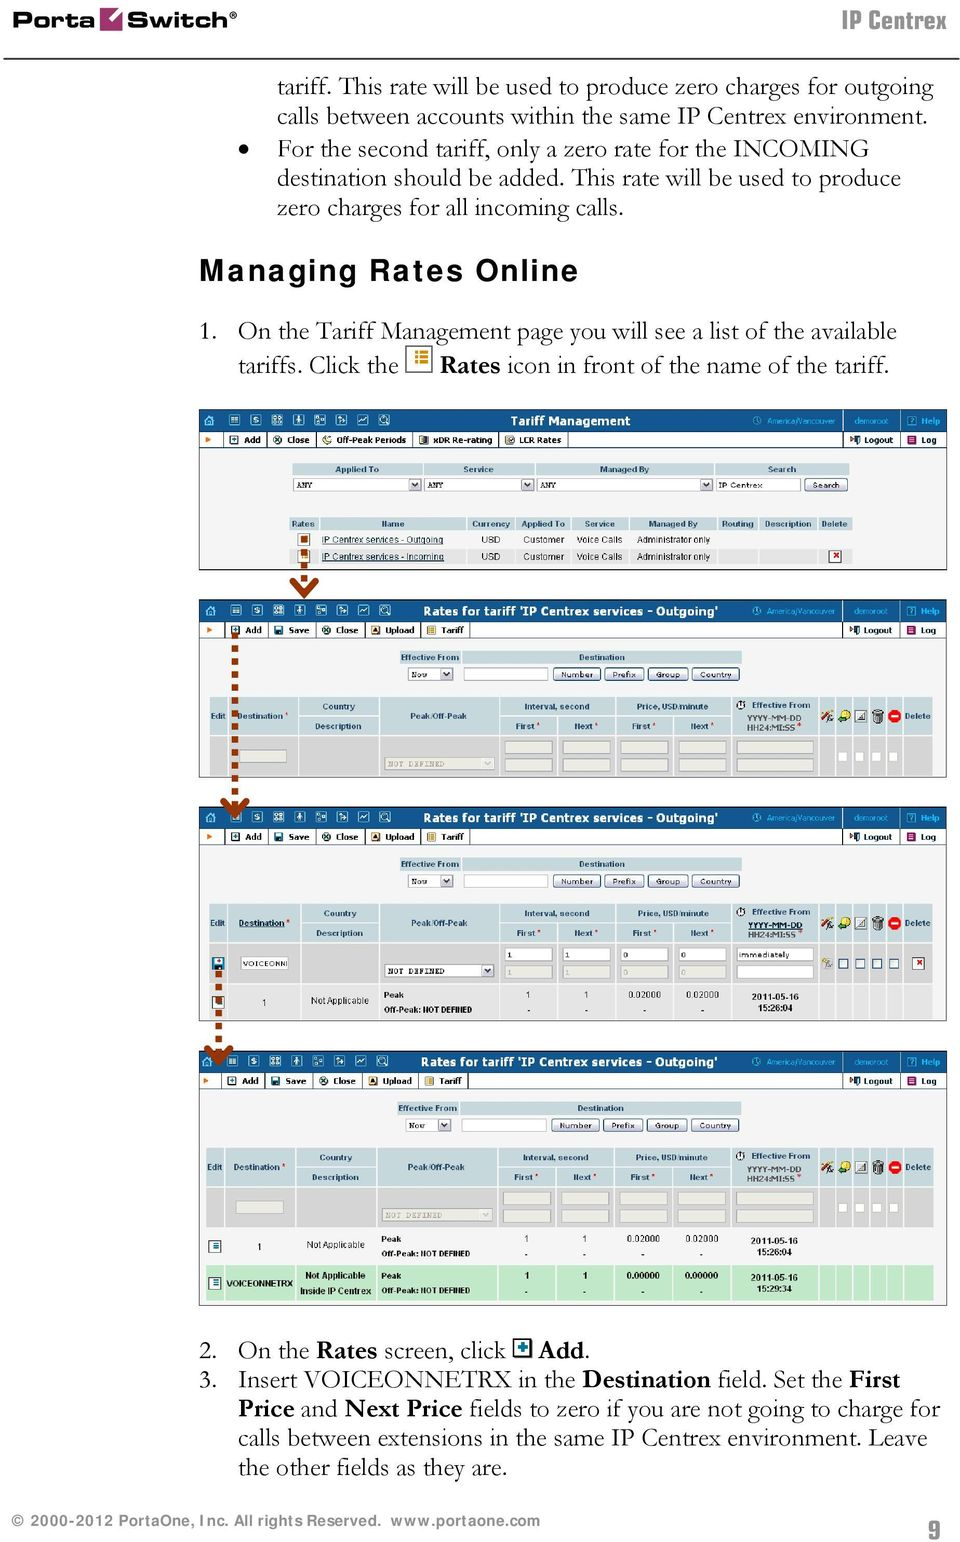 On the Tariff Management page you will see a list of the available tariffs. Click the Rates icon in front of the name of the tariff. 2. On the Rates screen, click Add. 3.